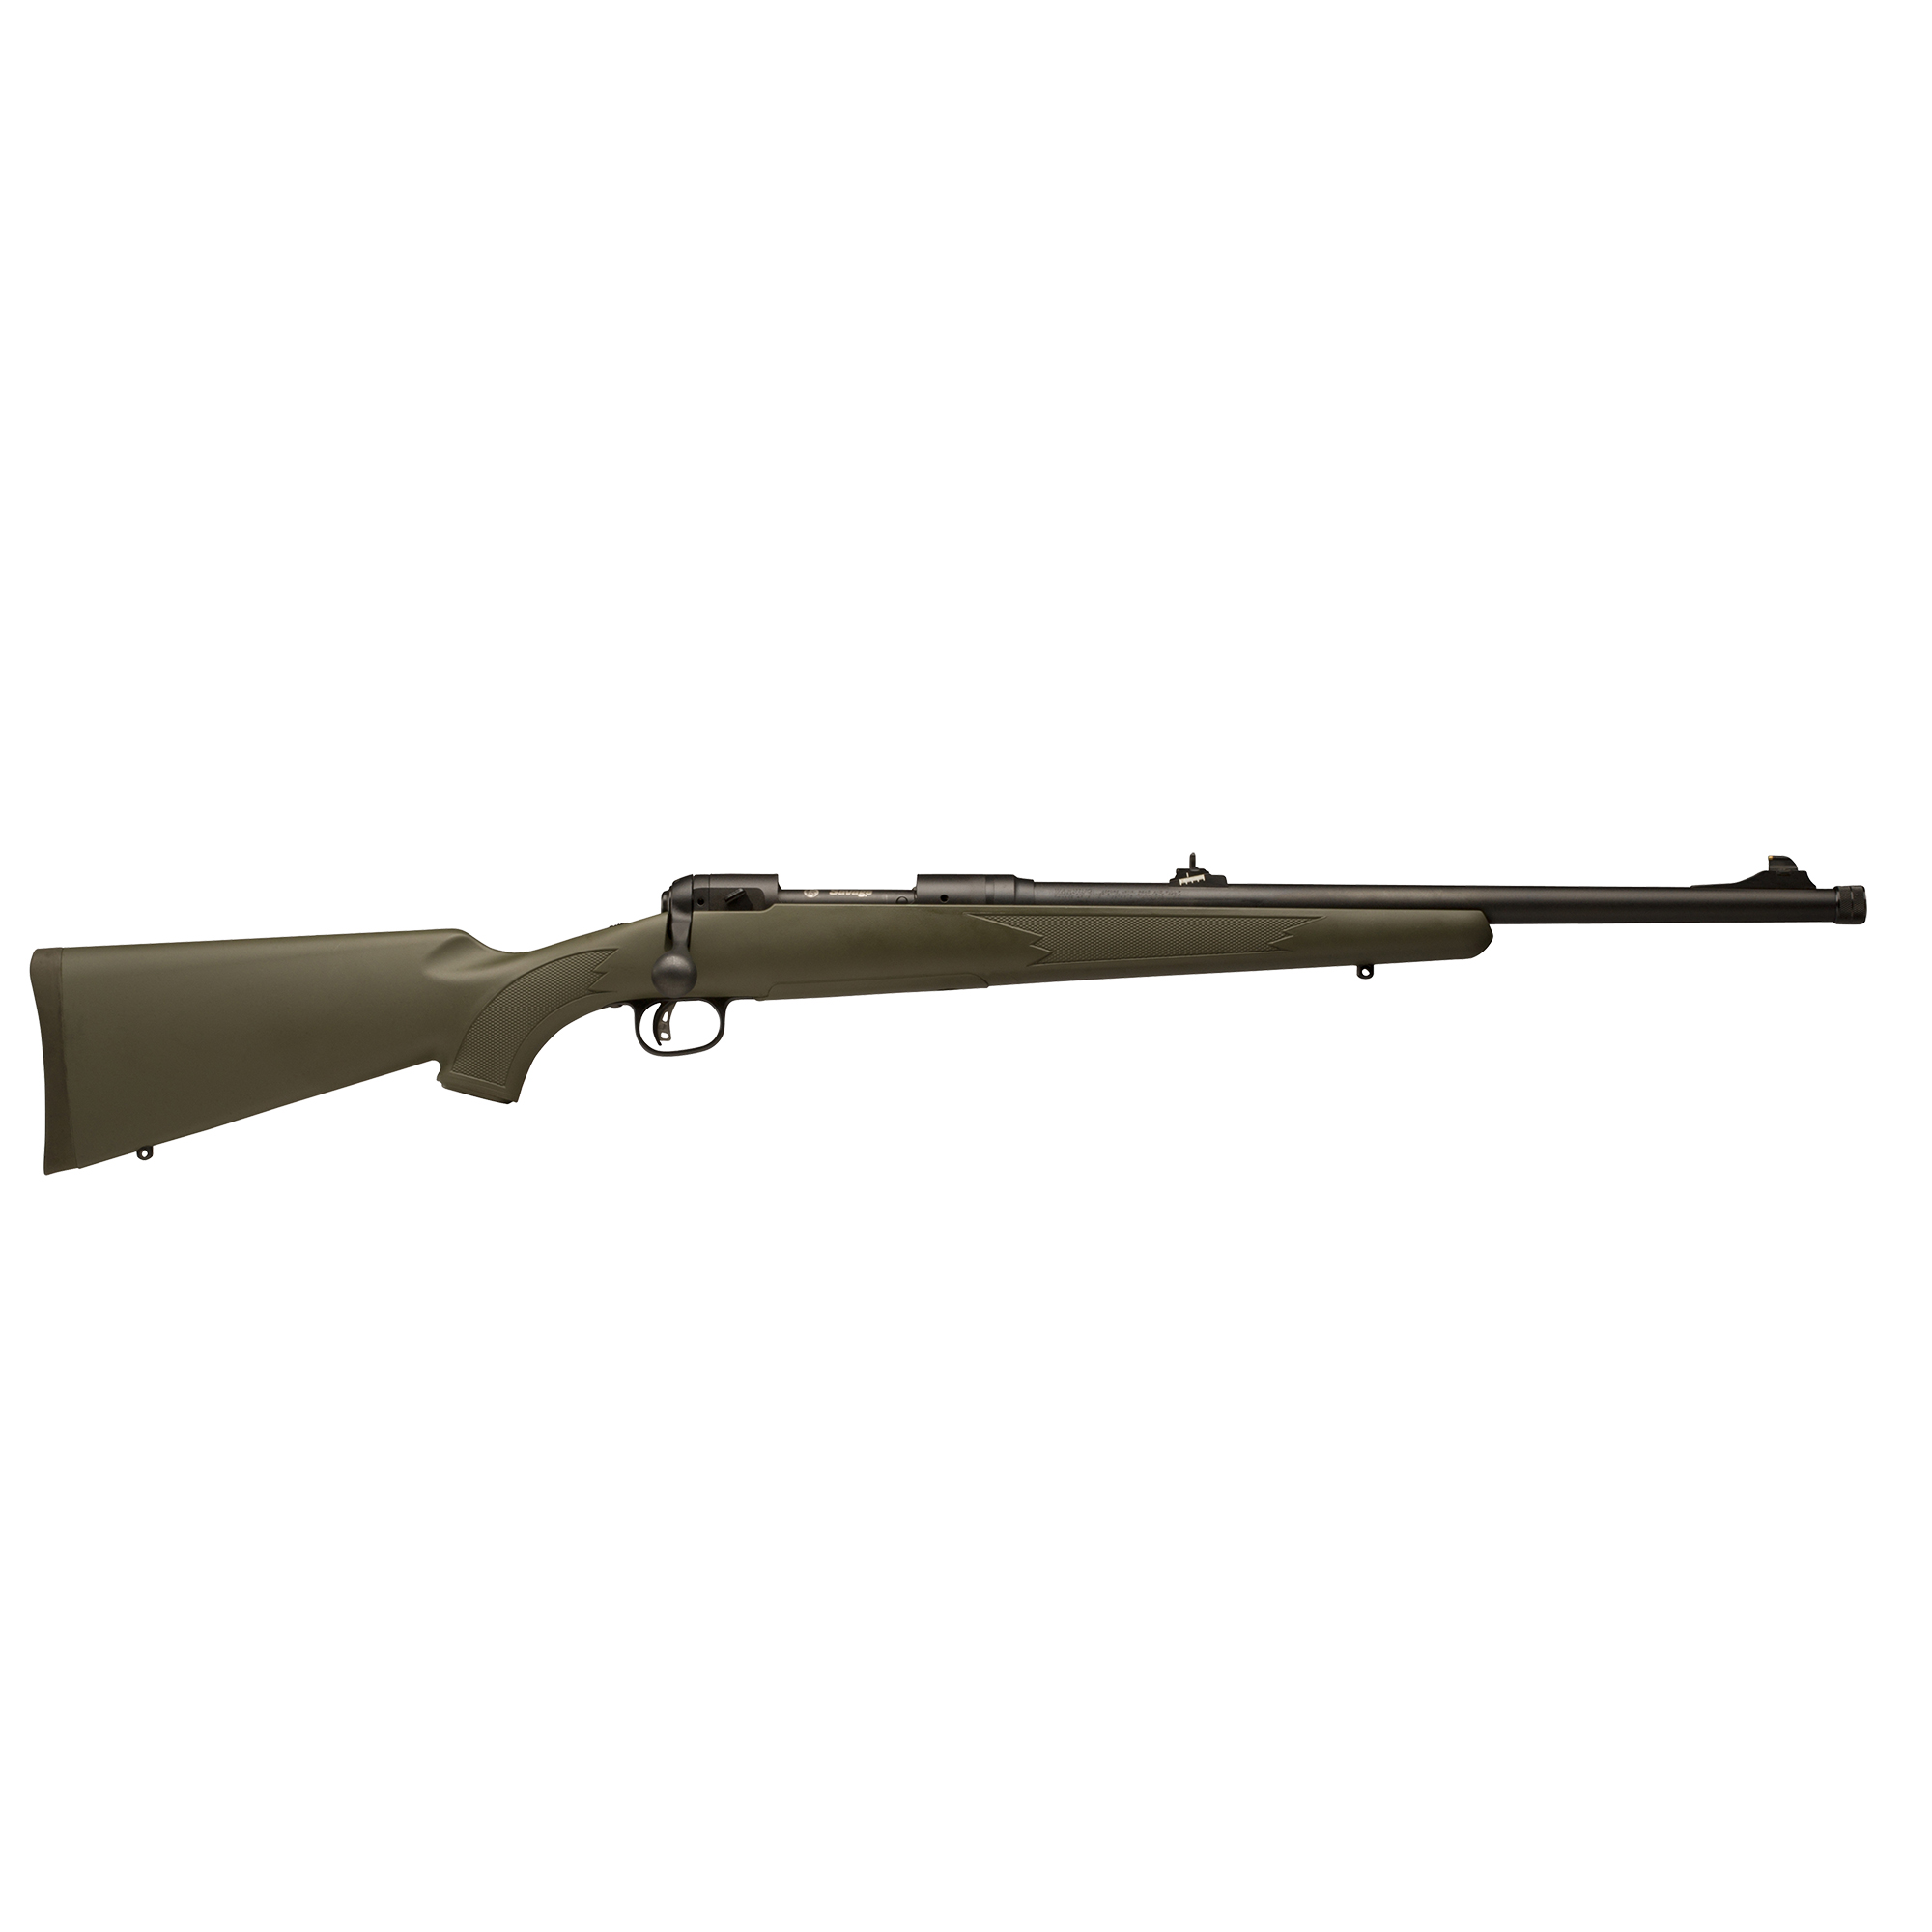 Savage Model 110 Hog Hunter Centerfire Rifle, .308 Win.